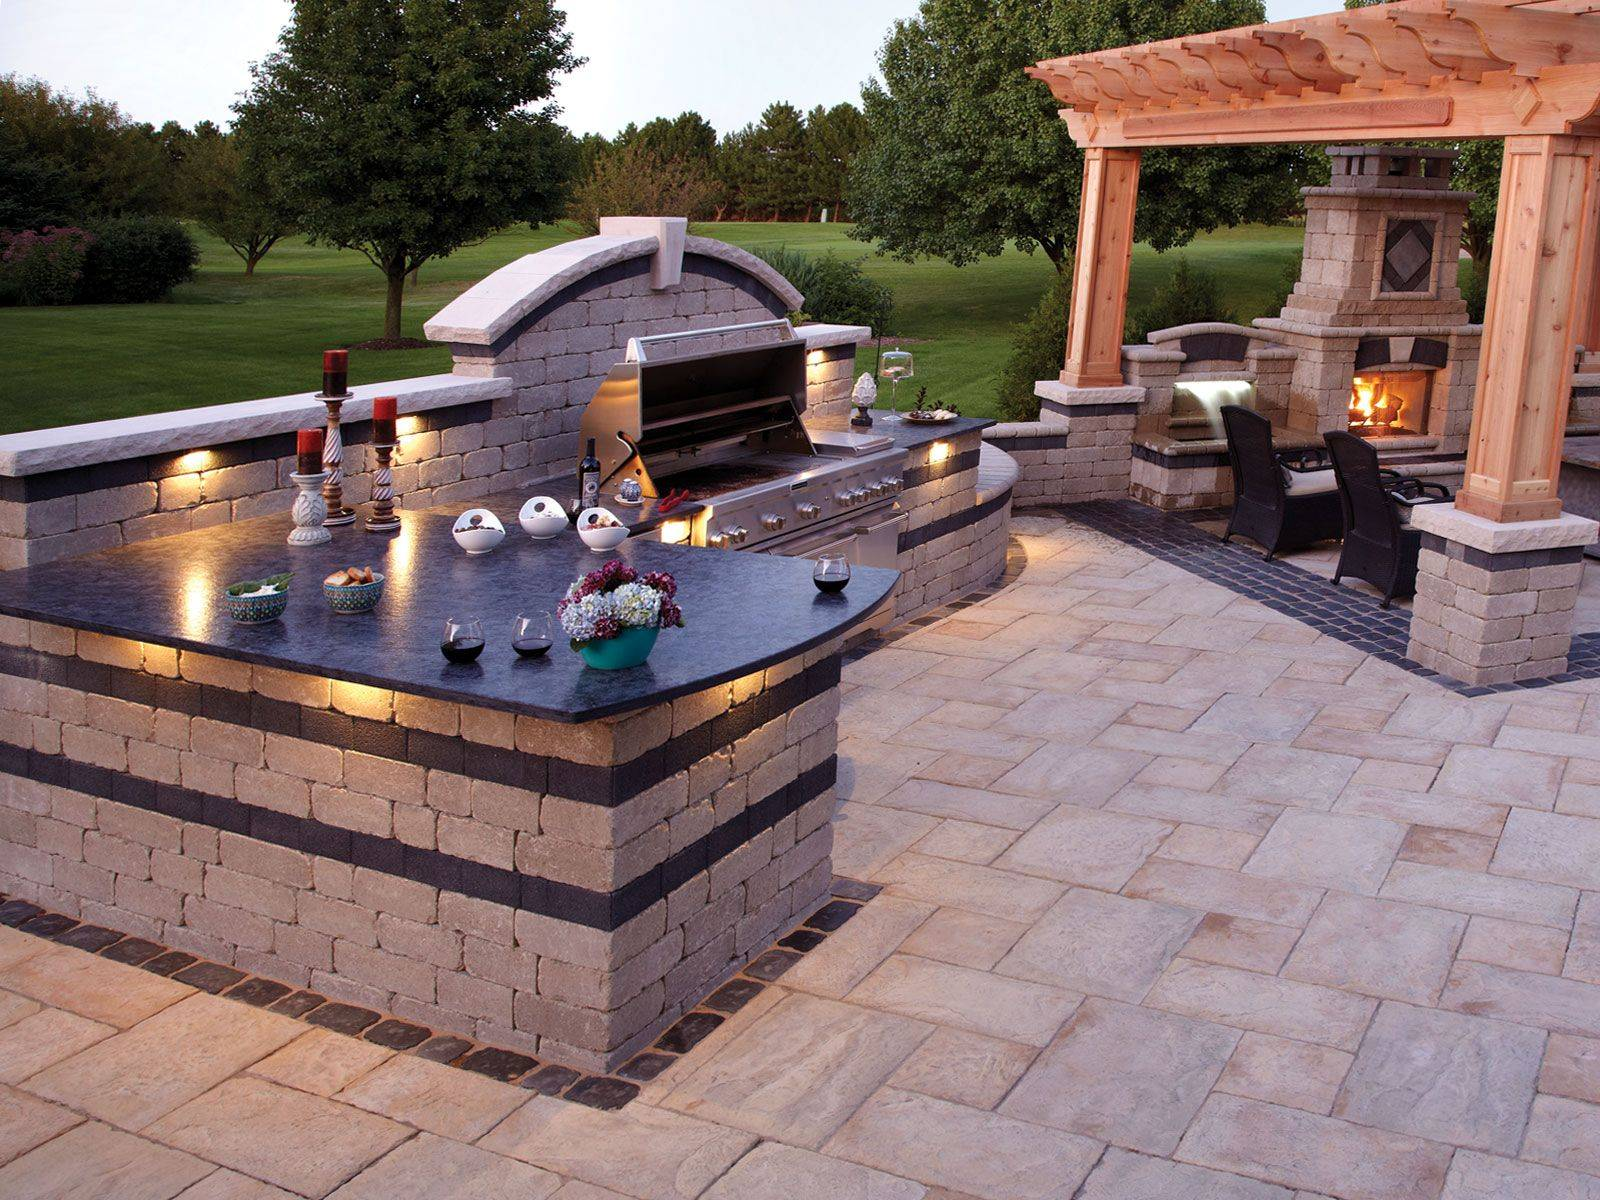 Barbecue Area Set up